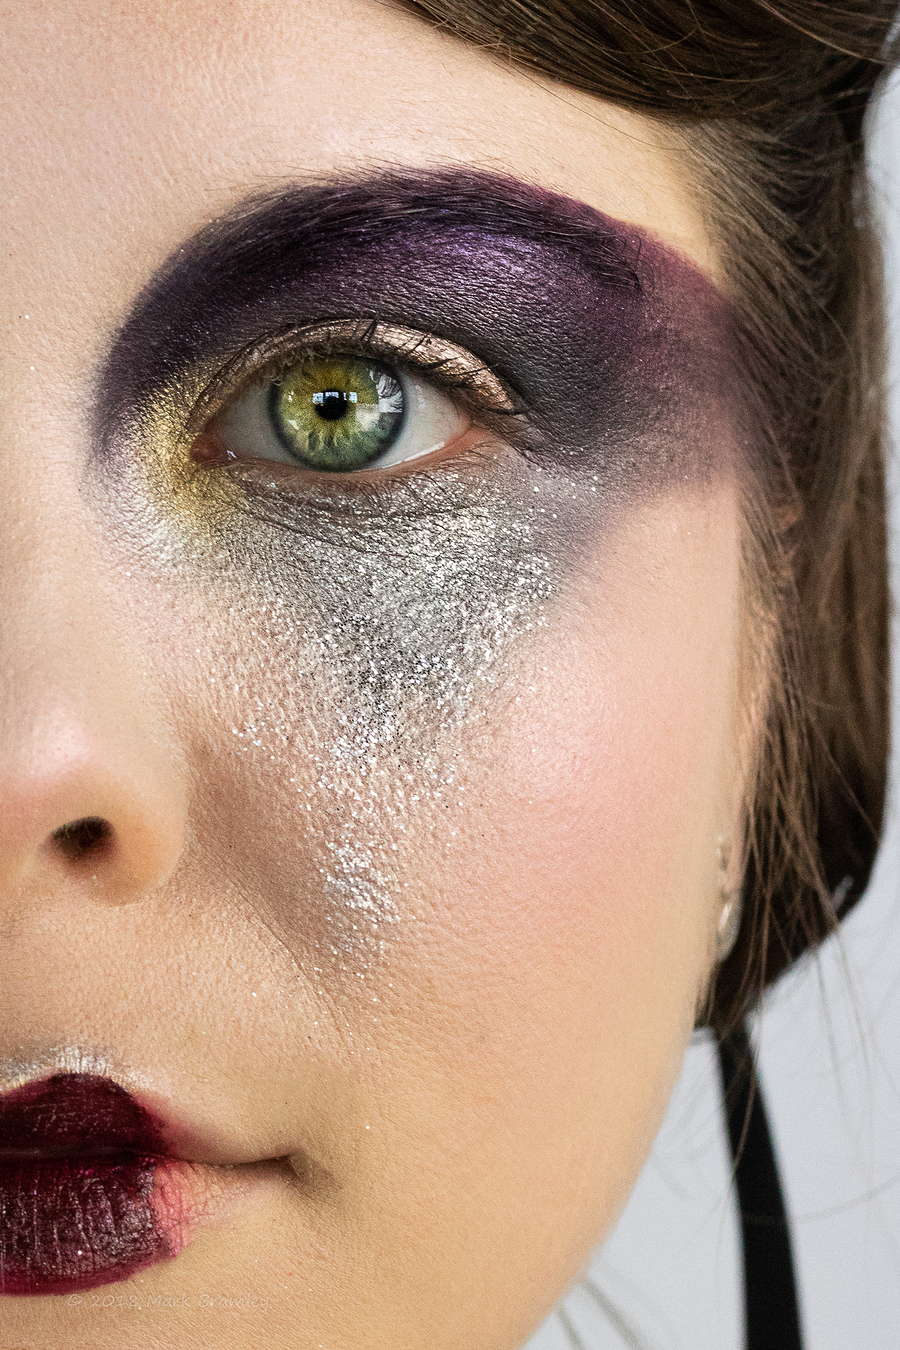 'Dark Beauty' Couture Creature / Makeup by SkulledRabbitFX, Taken at SS Creative Photography / Uploaded 11th May 2018 @ 05:26 PM